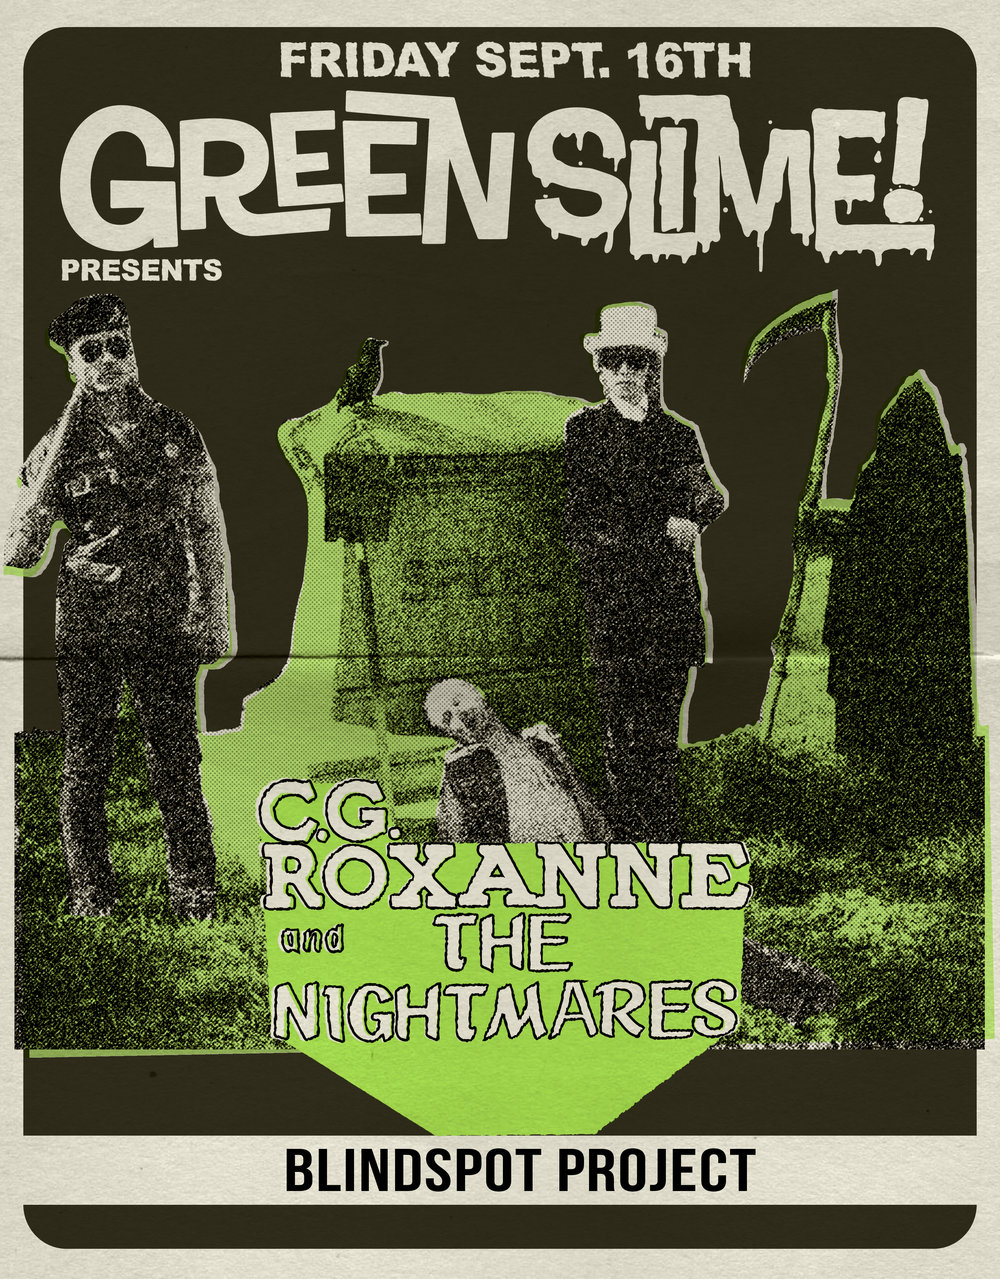 GREEN SLIME PRESENTS 2.jpg